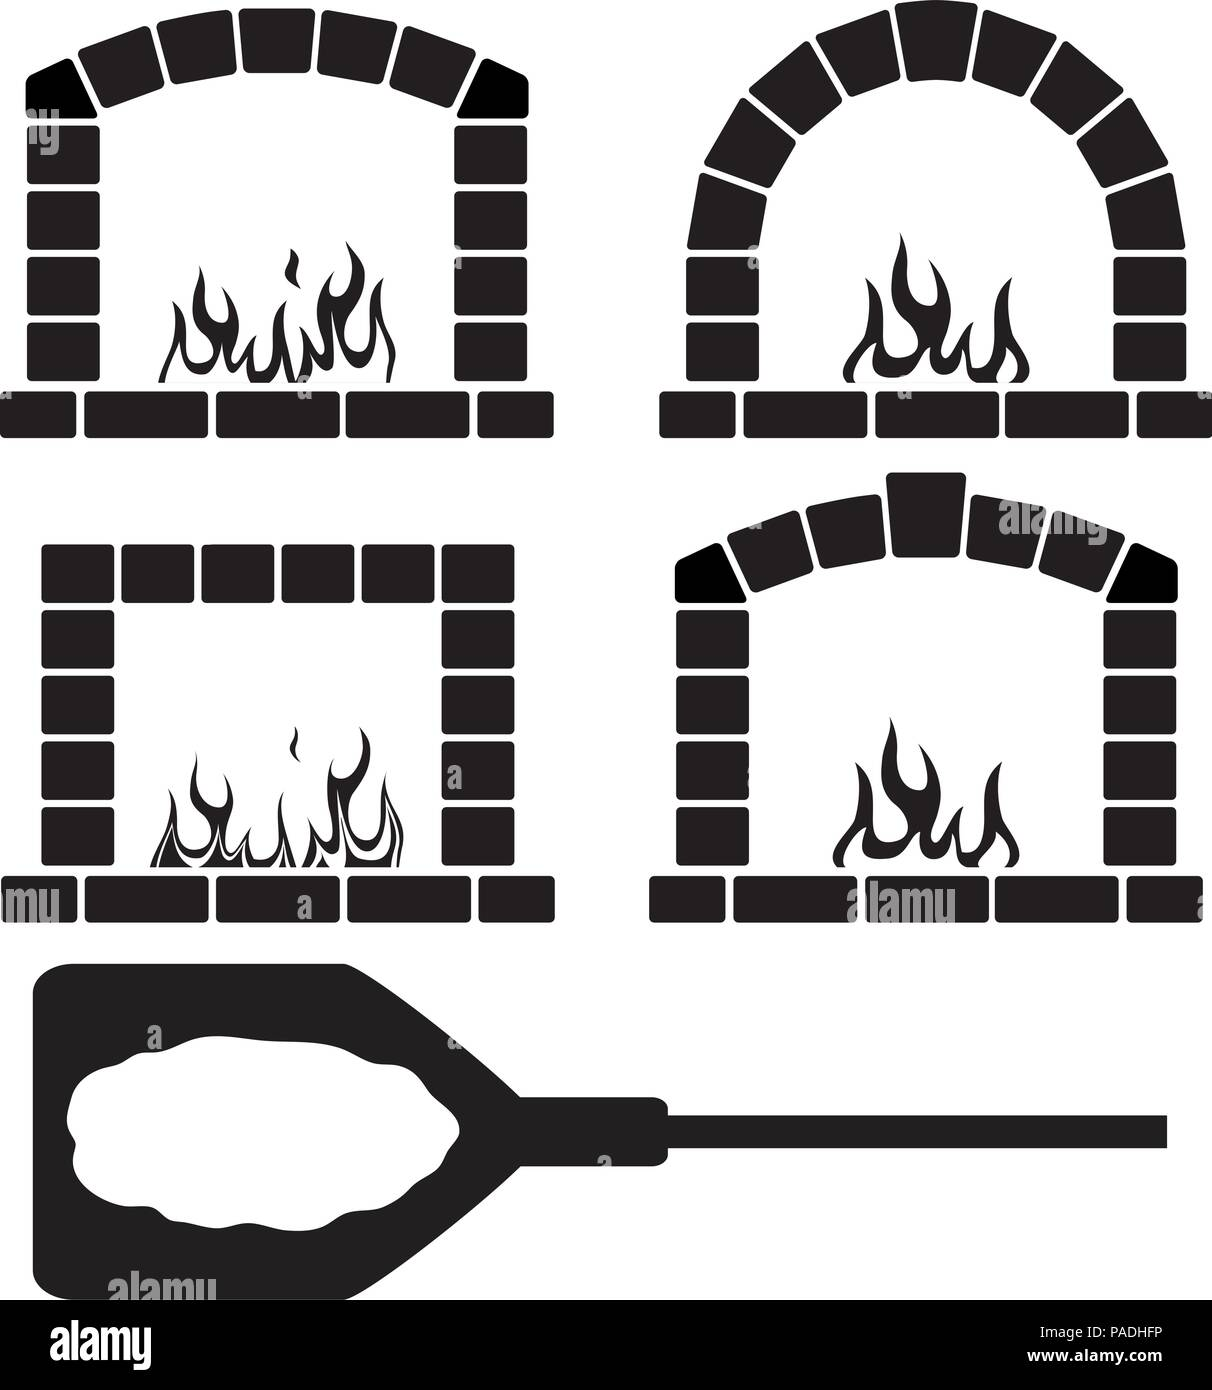 vector black and white clipart set of ovens with burning fire and pizza on a shovel symbol, pizzeria or restaurant graphic design - Stock Vector